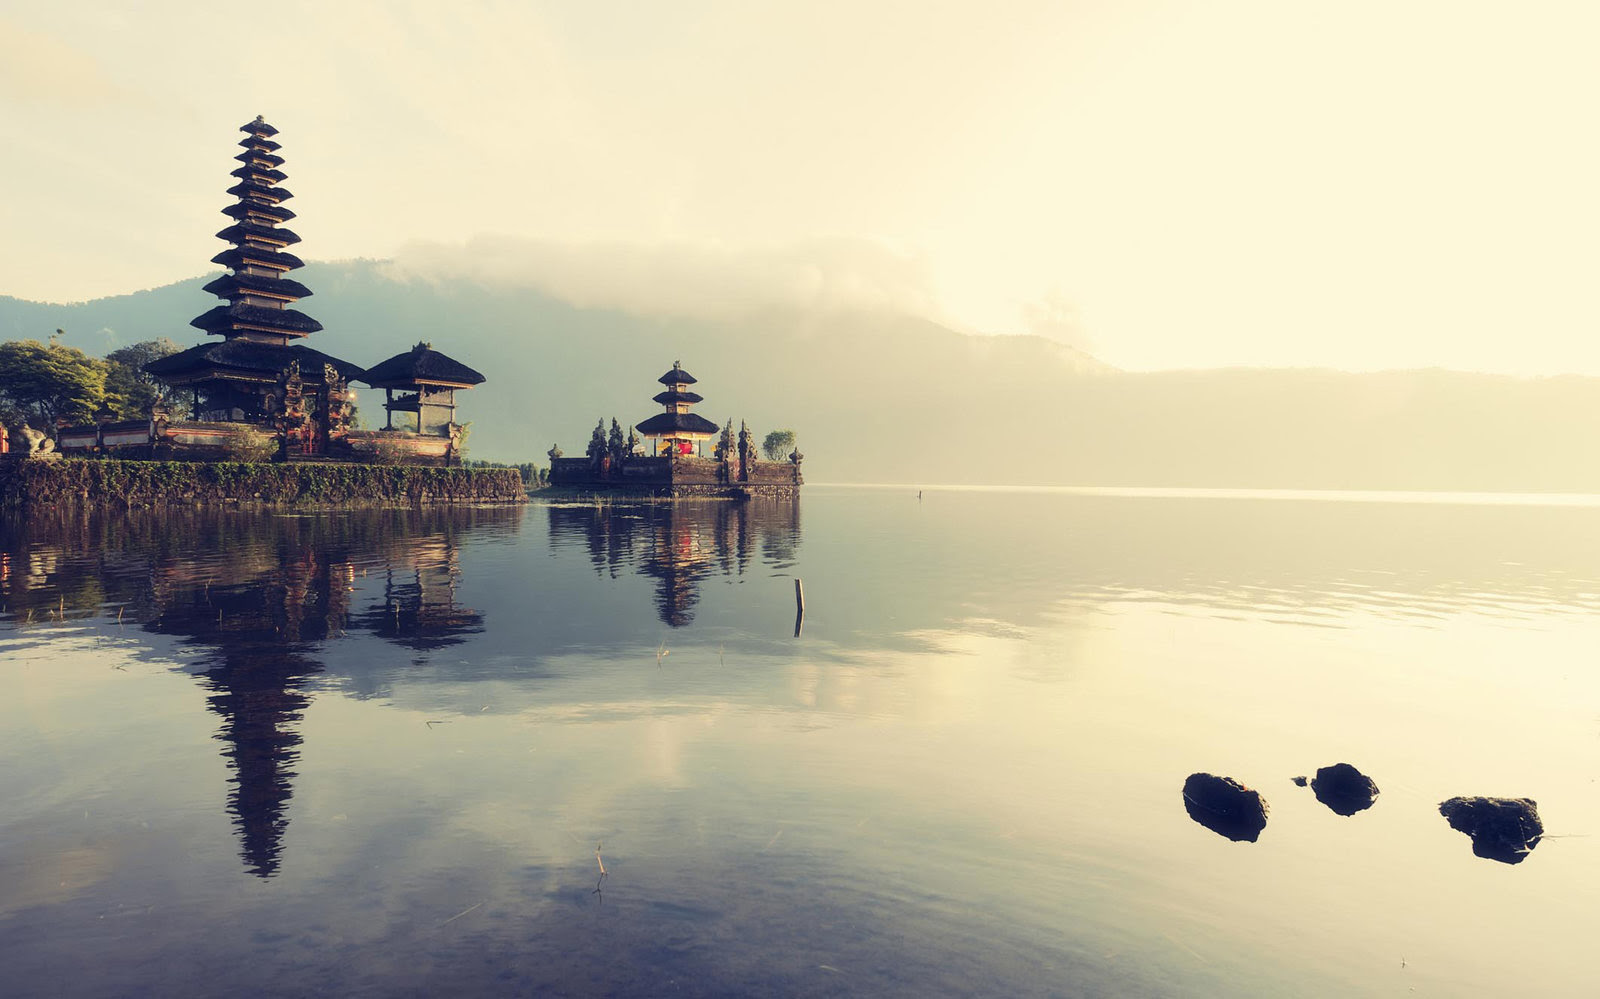 Sunrise over Pura Ulun Danu Bratan (Balinese floating temple on lake Bratan) with mountains in the background and clear reflections on the lake.